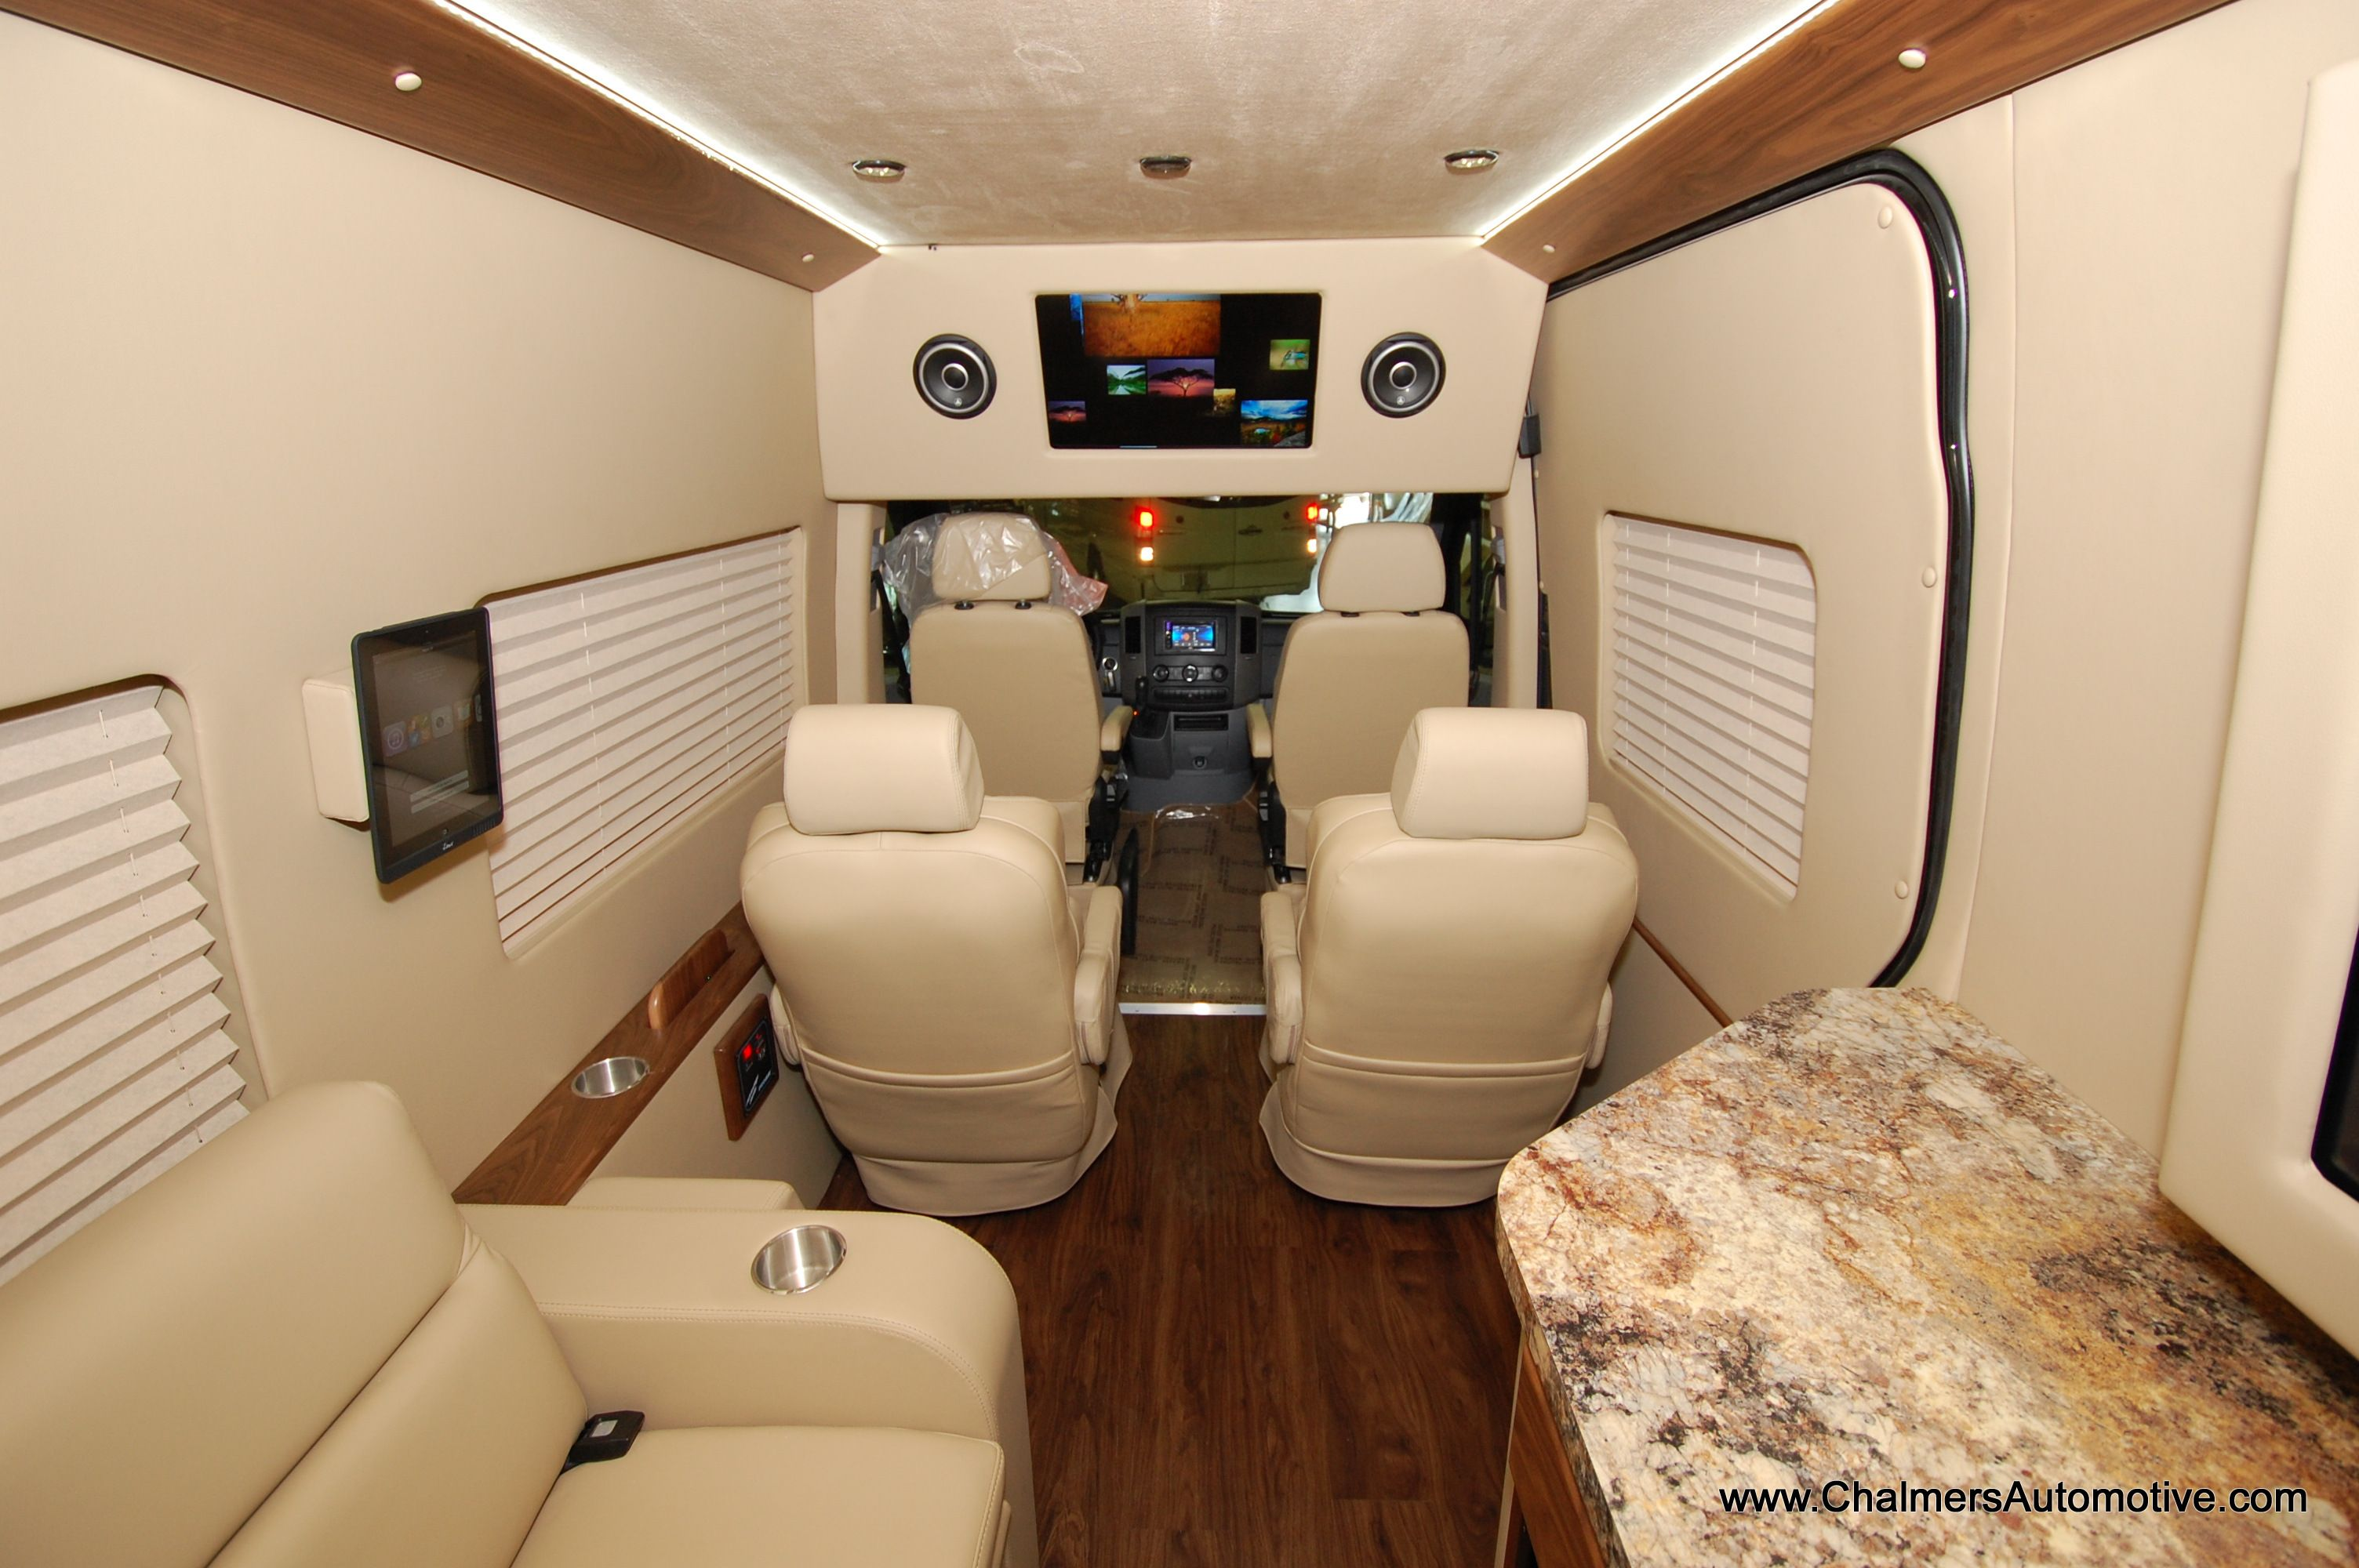 Mobileoffice van mercedes benz luxury mobile office for Mercedes benz sprinter conversion van for sale